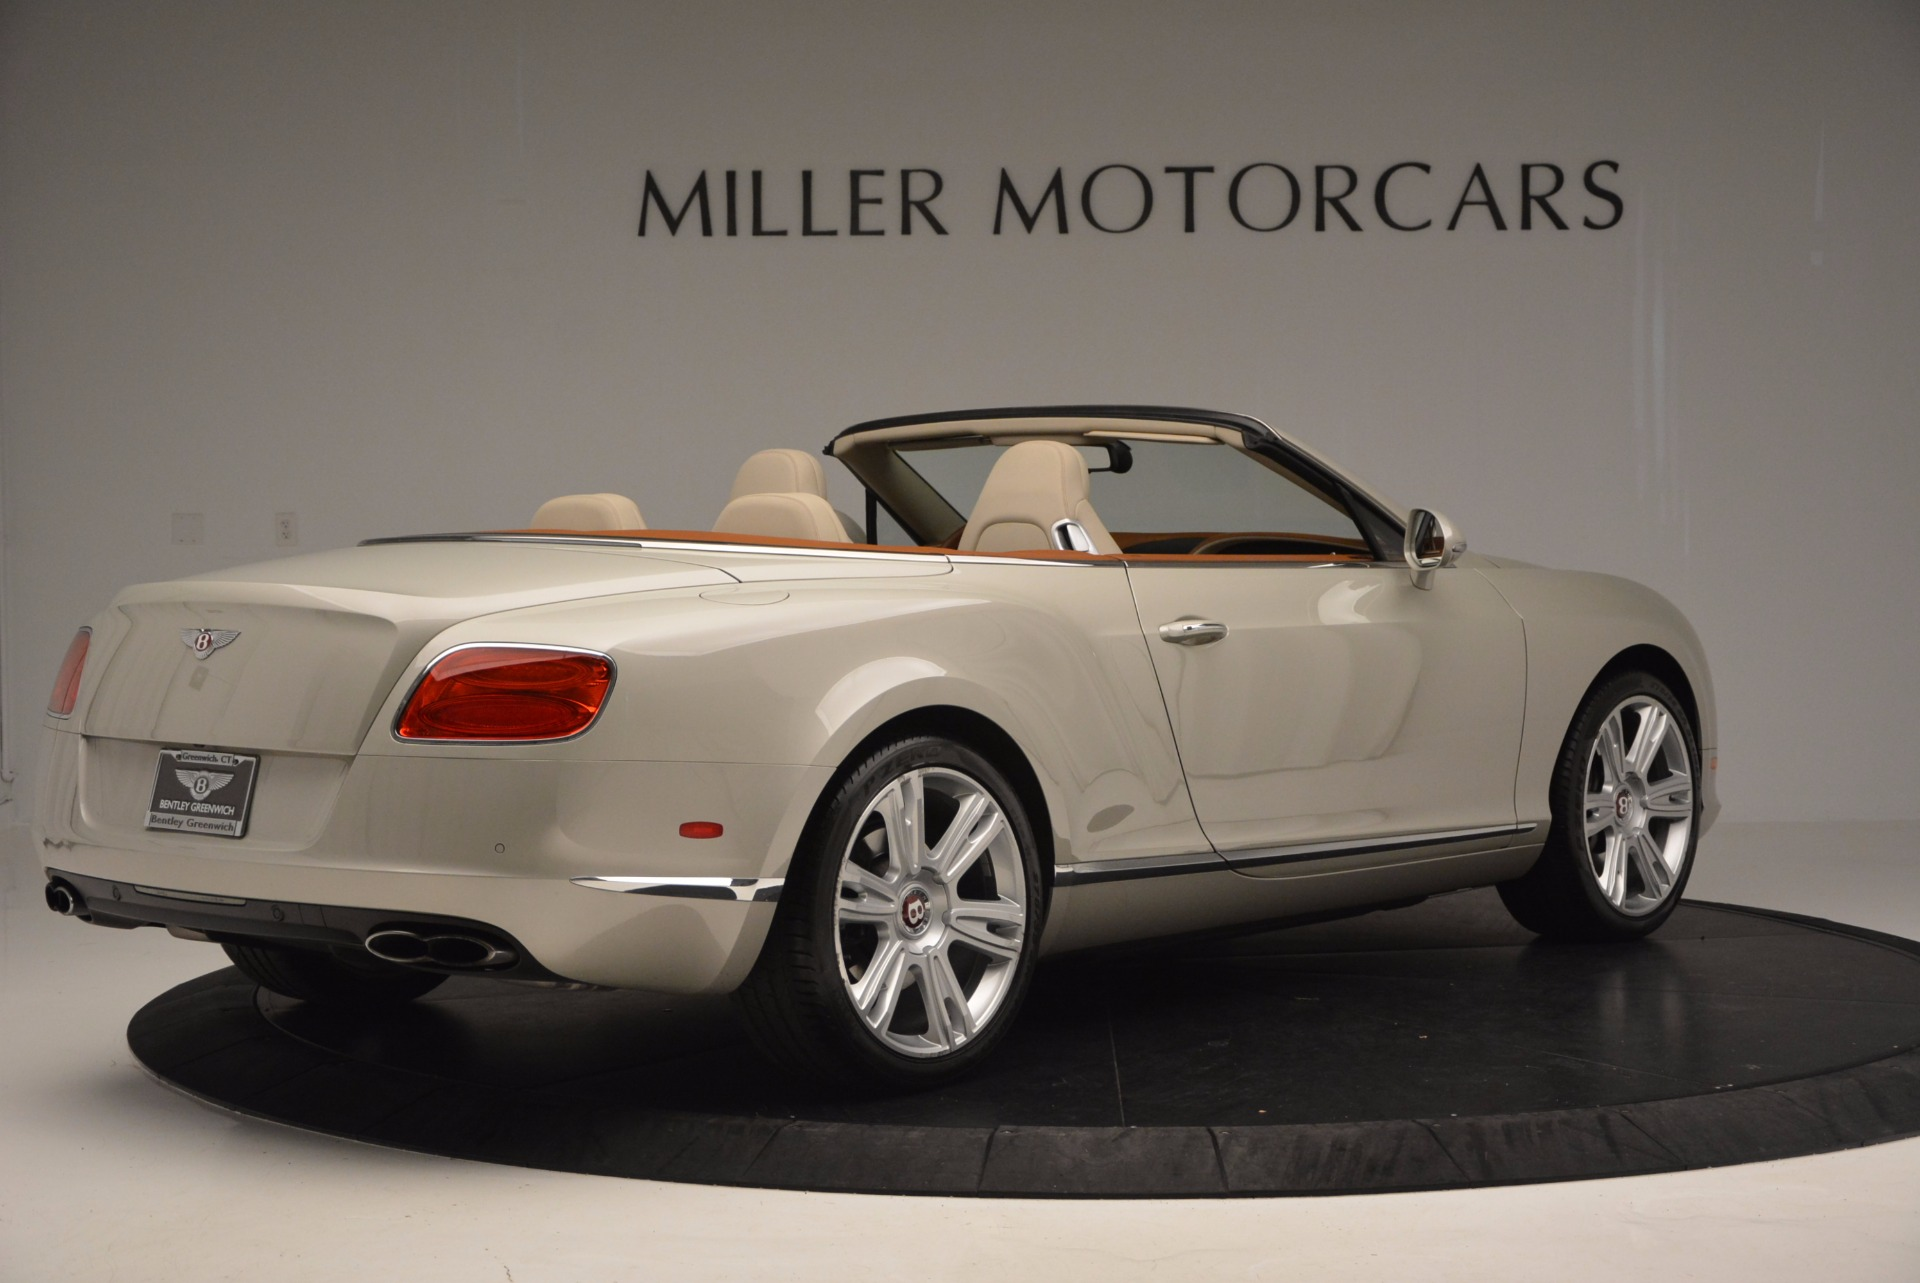 Used 2013 Bentley Continental GTC V8  For Sale In Greenwich, CT. Alfa Romeo of Greenwich, 7108 675_p8